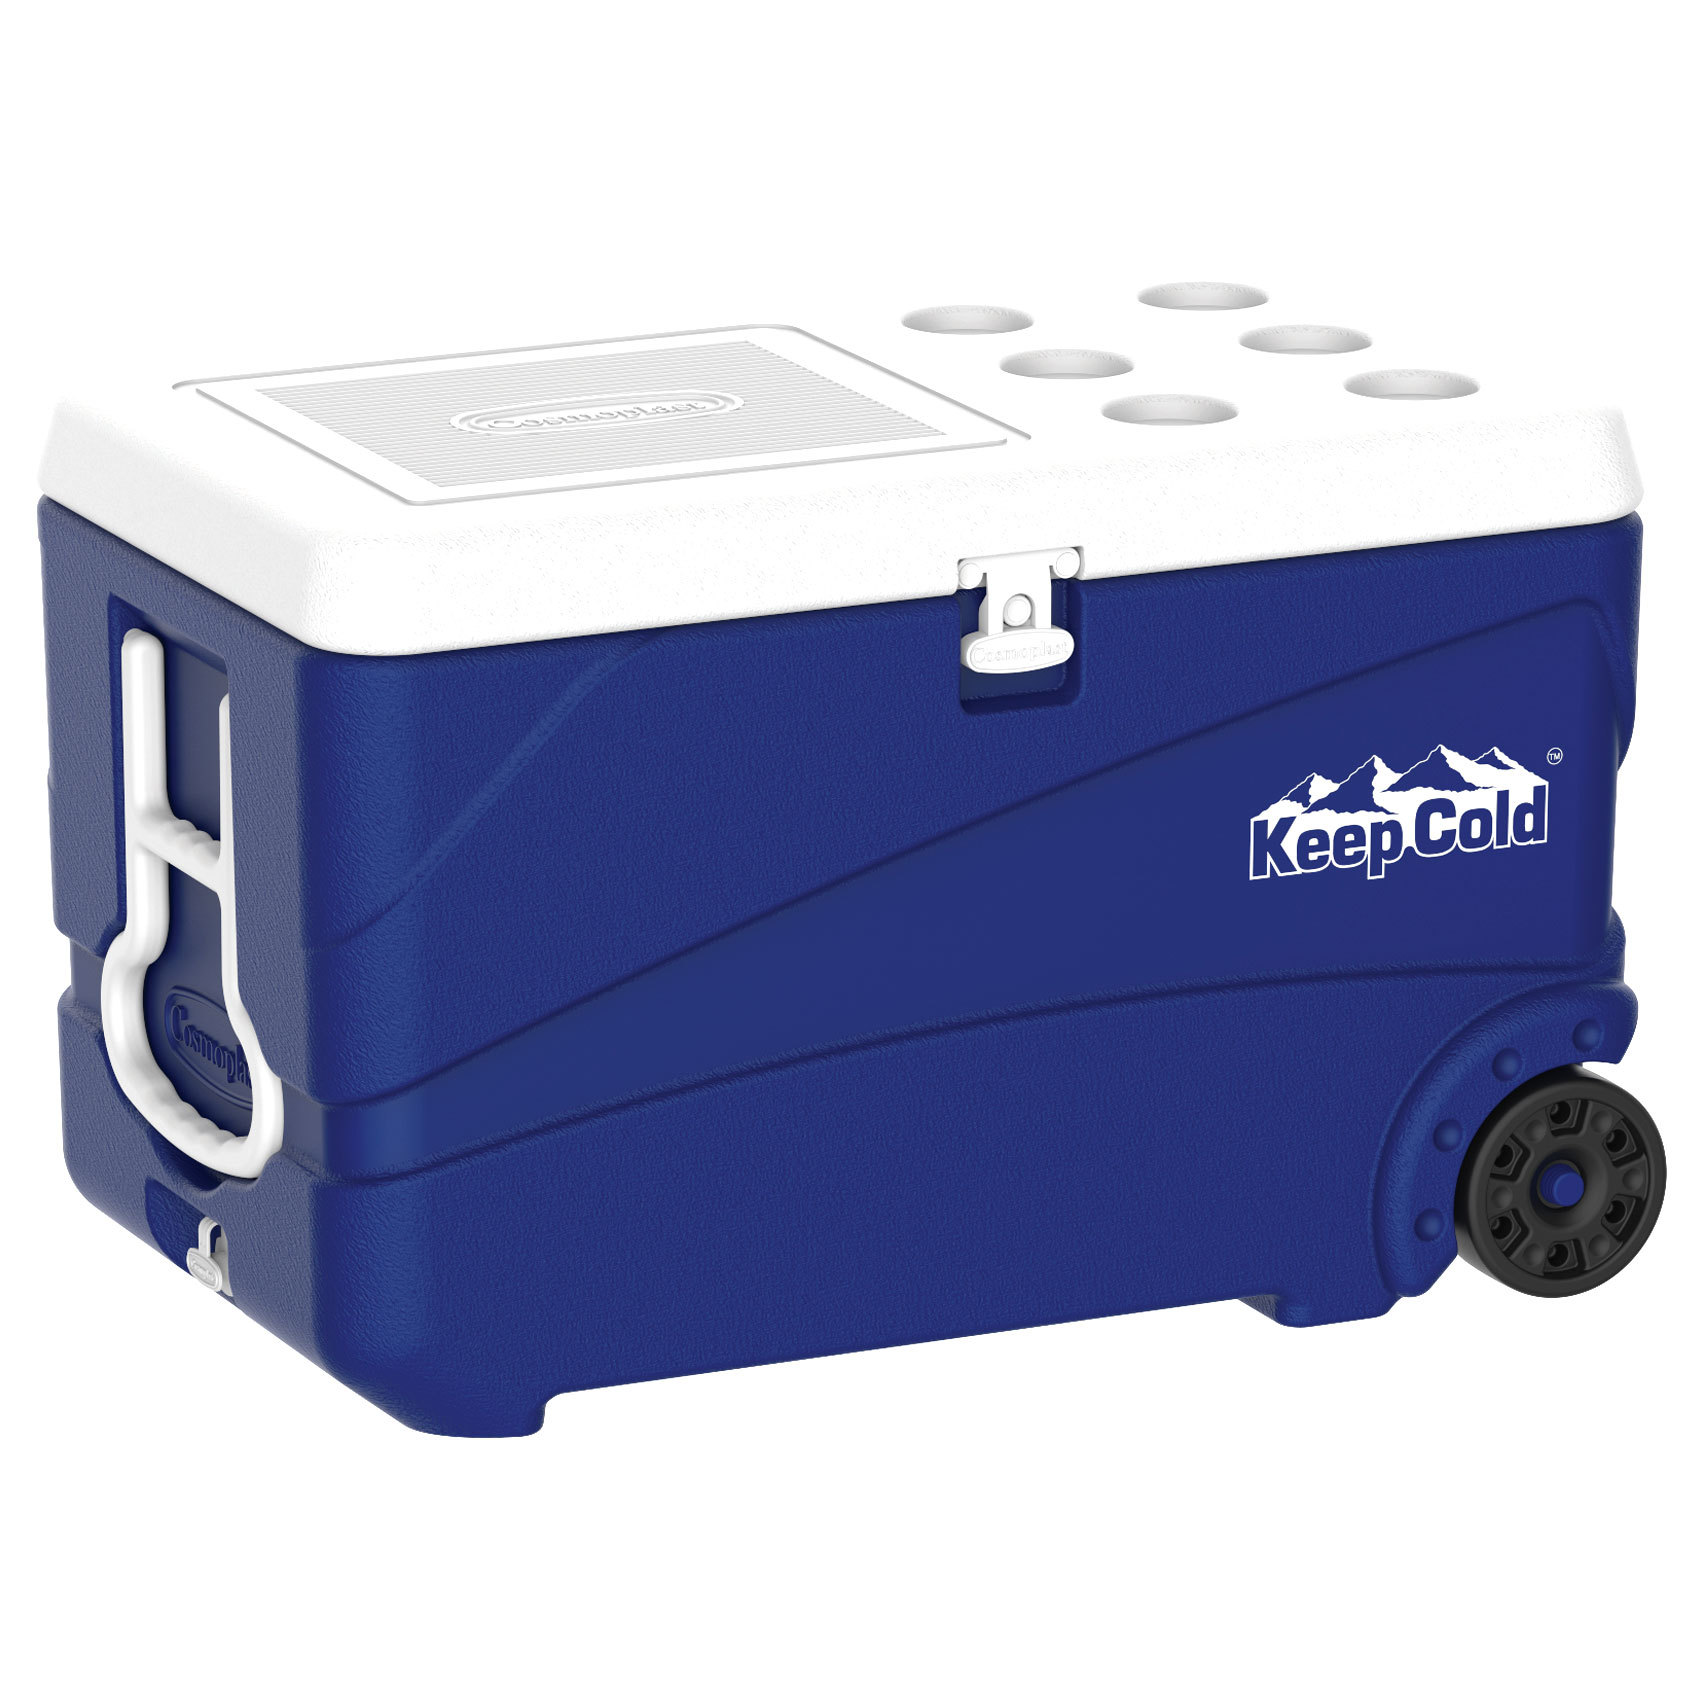 Buy KeepCold Deluxe 80L Icebox...